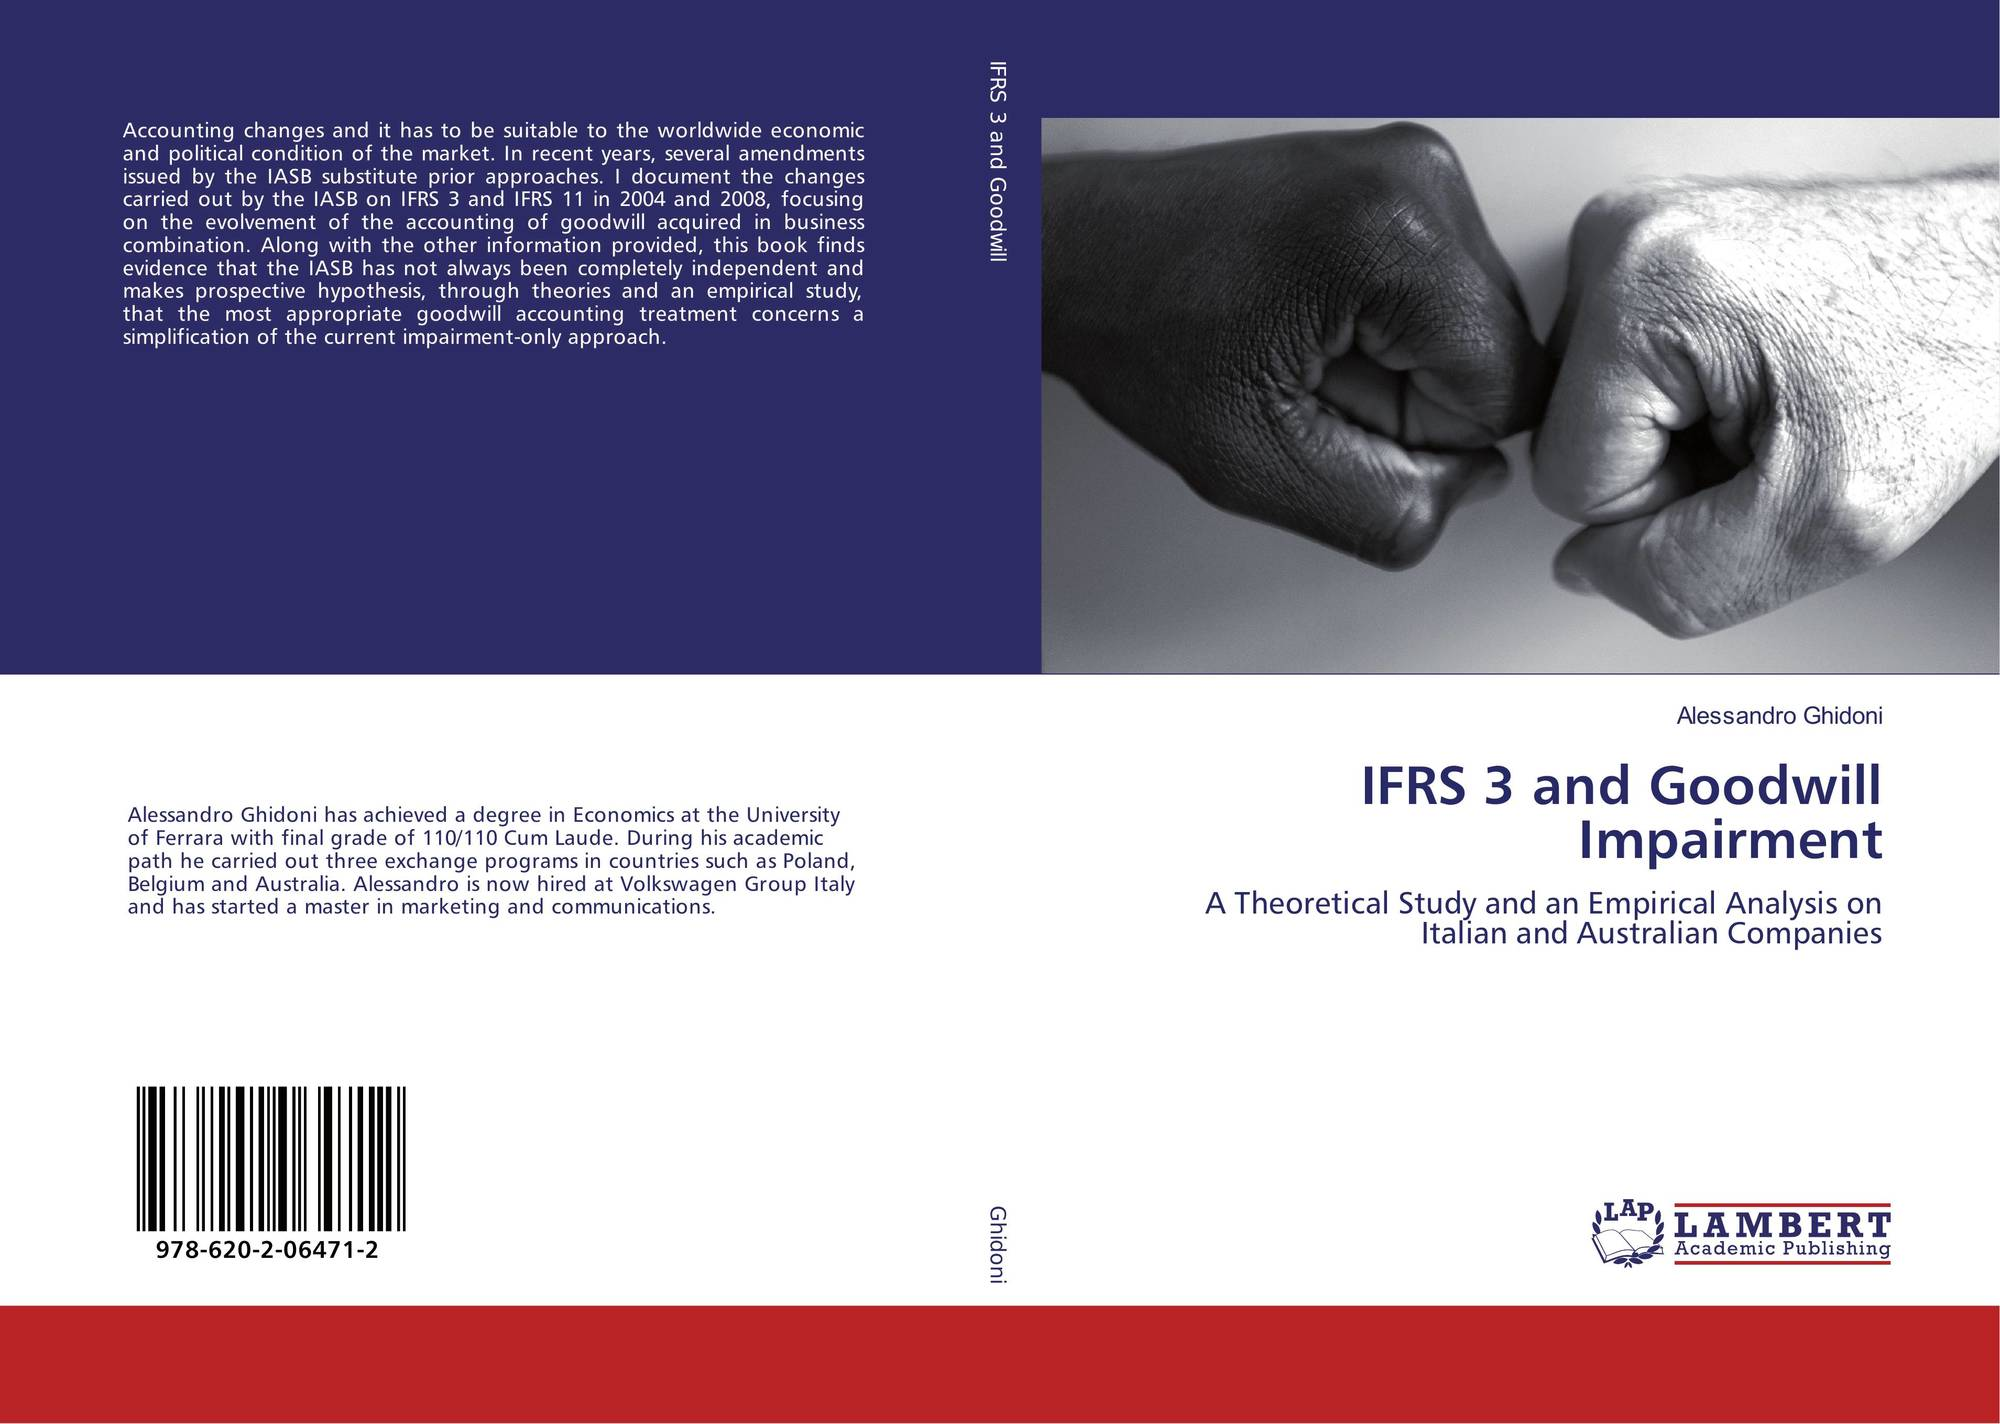 goodwill impairment case analysis Goodwill impairment testing harvard case solution & analysis here's background on goodwill impairment and information of monetary reporting modifications that the financial accounting standards board (fasb) authorized in november 2016.